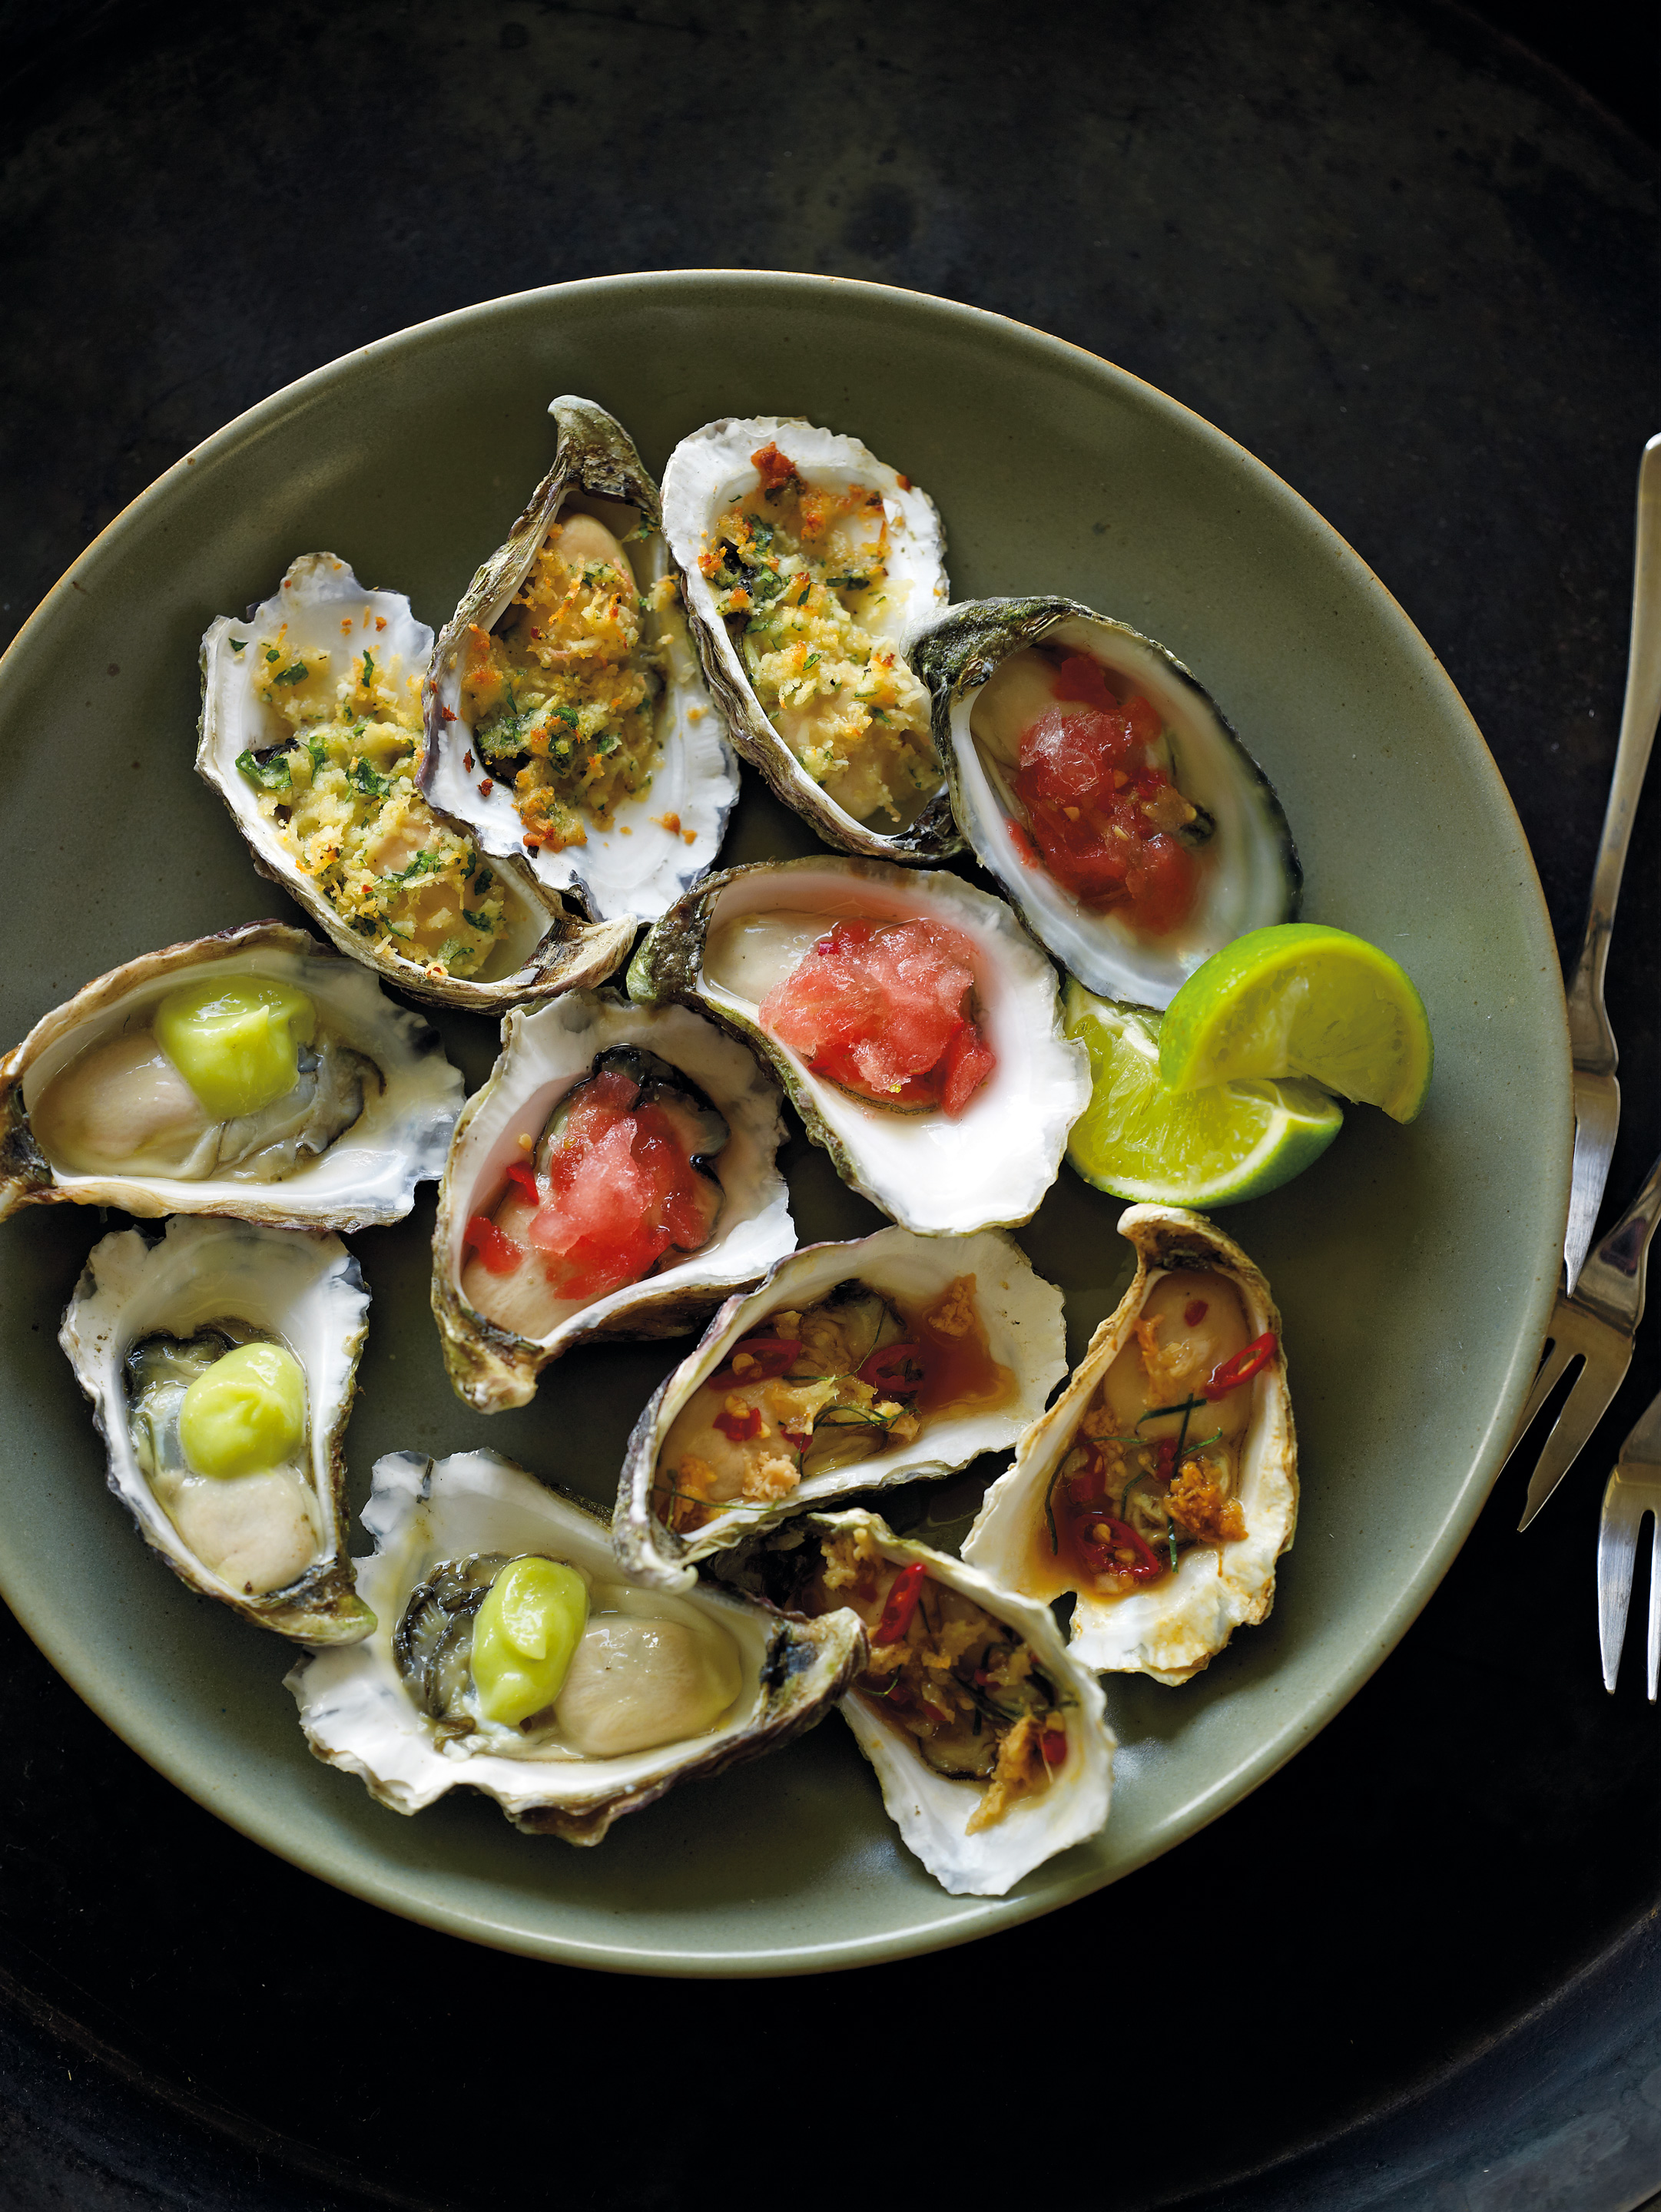 Oysters with horseradish and parmesan